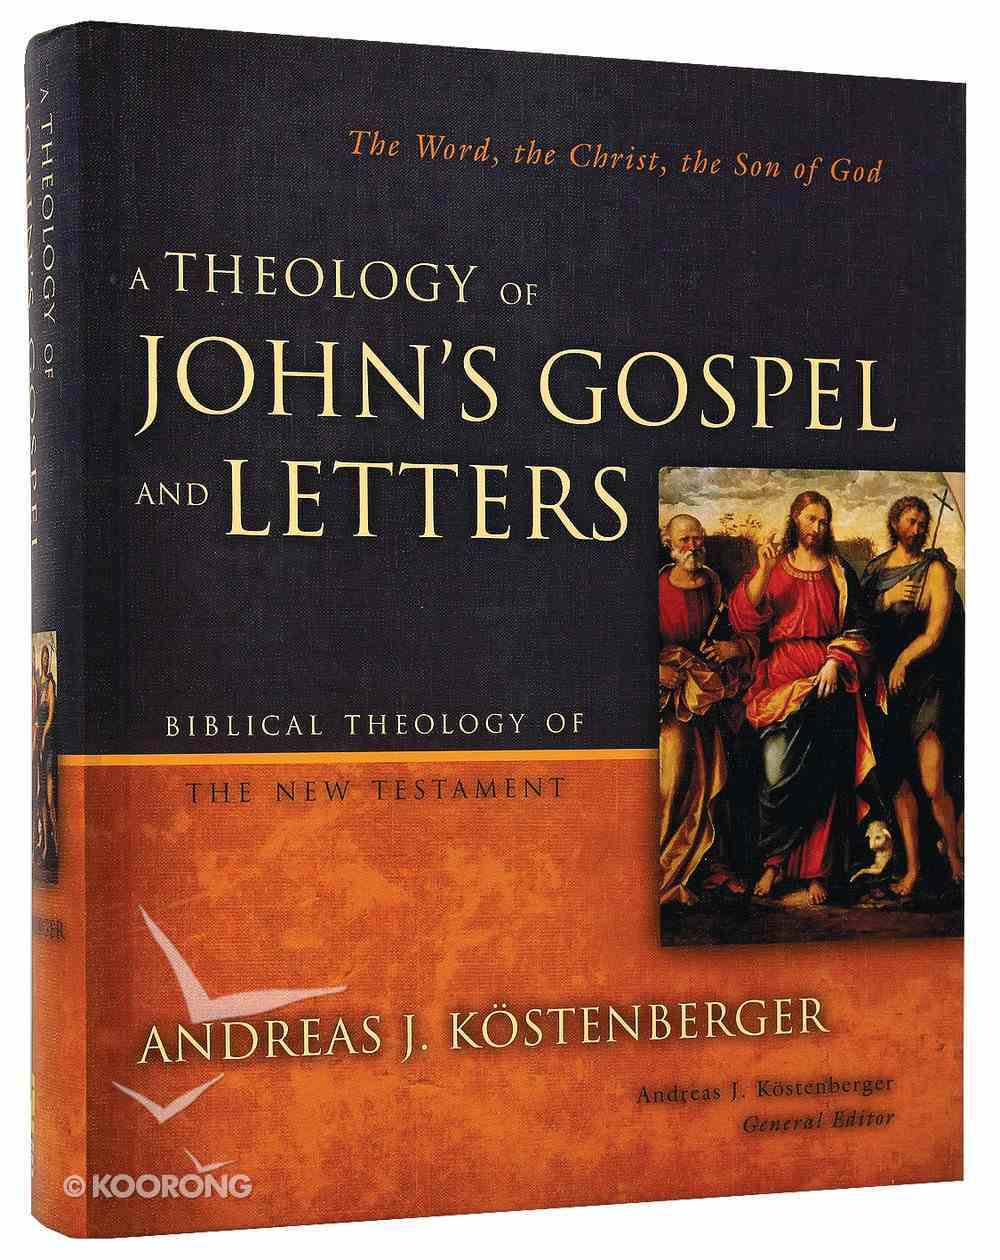 Theology of John's Gospel Letters (Biblical Theology Of The New Testament Series) Hardback